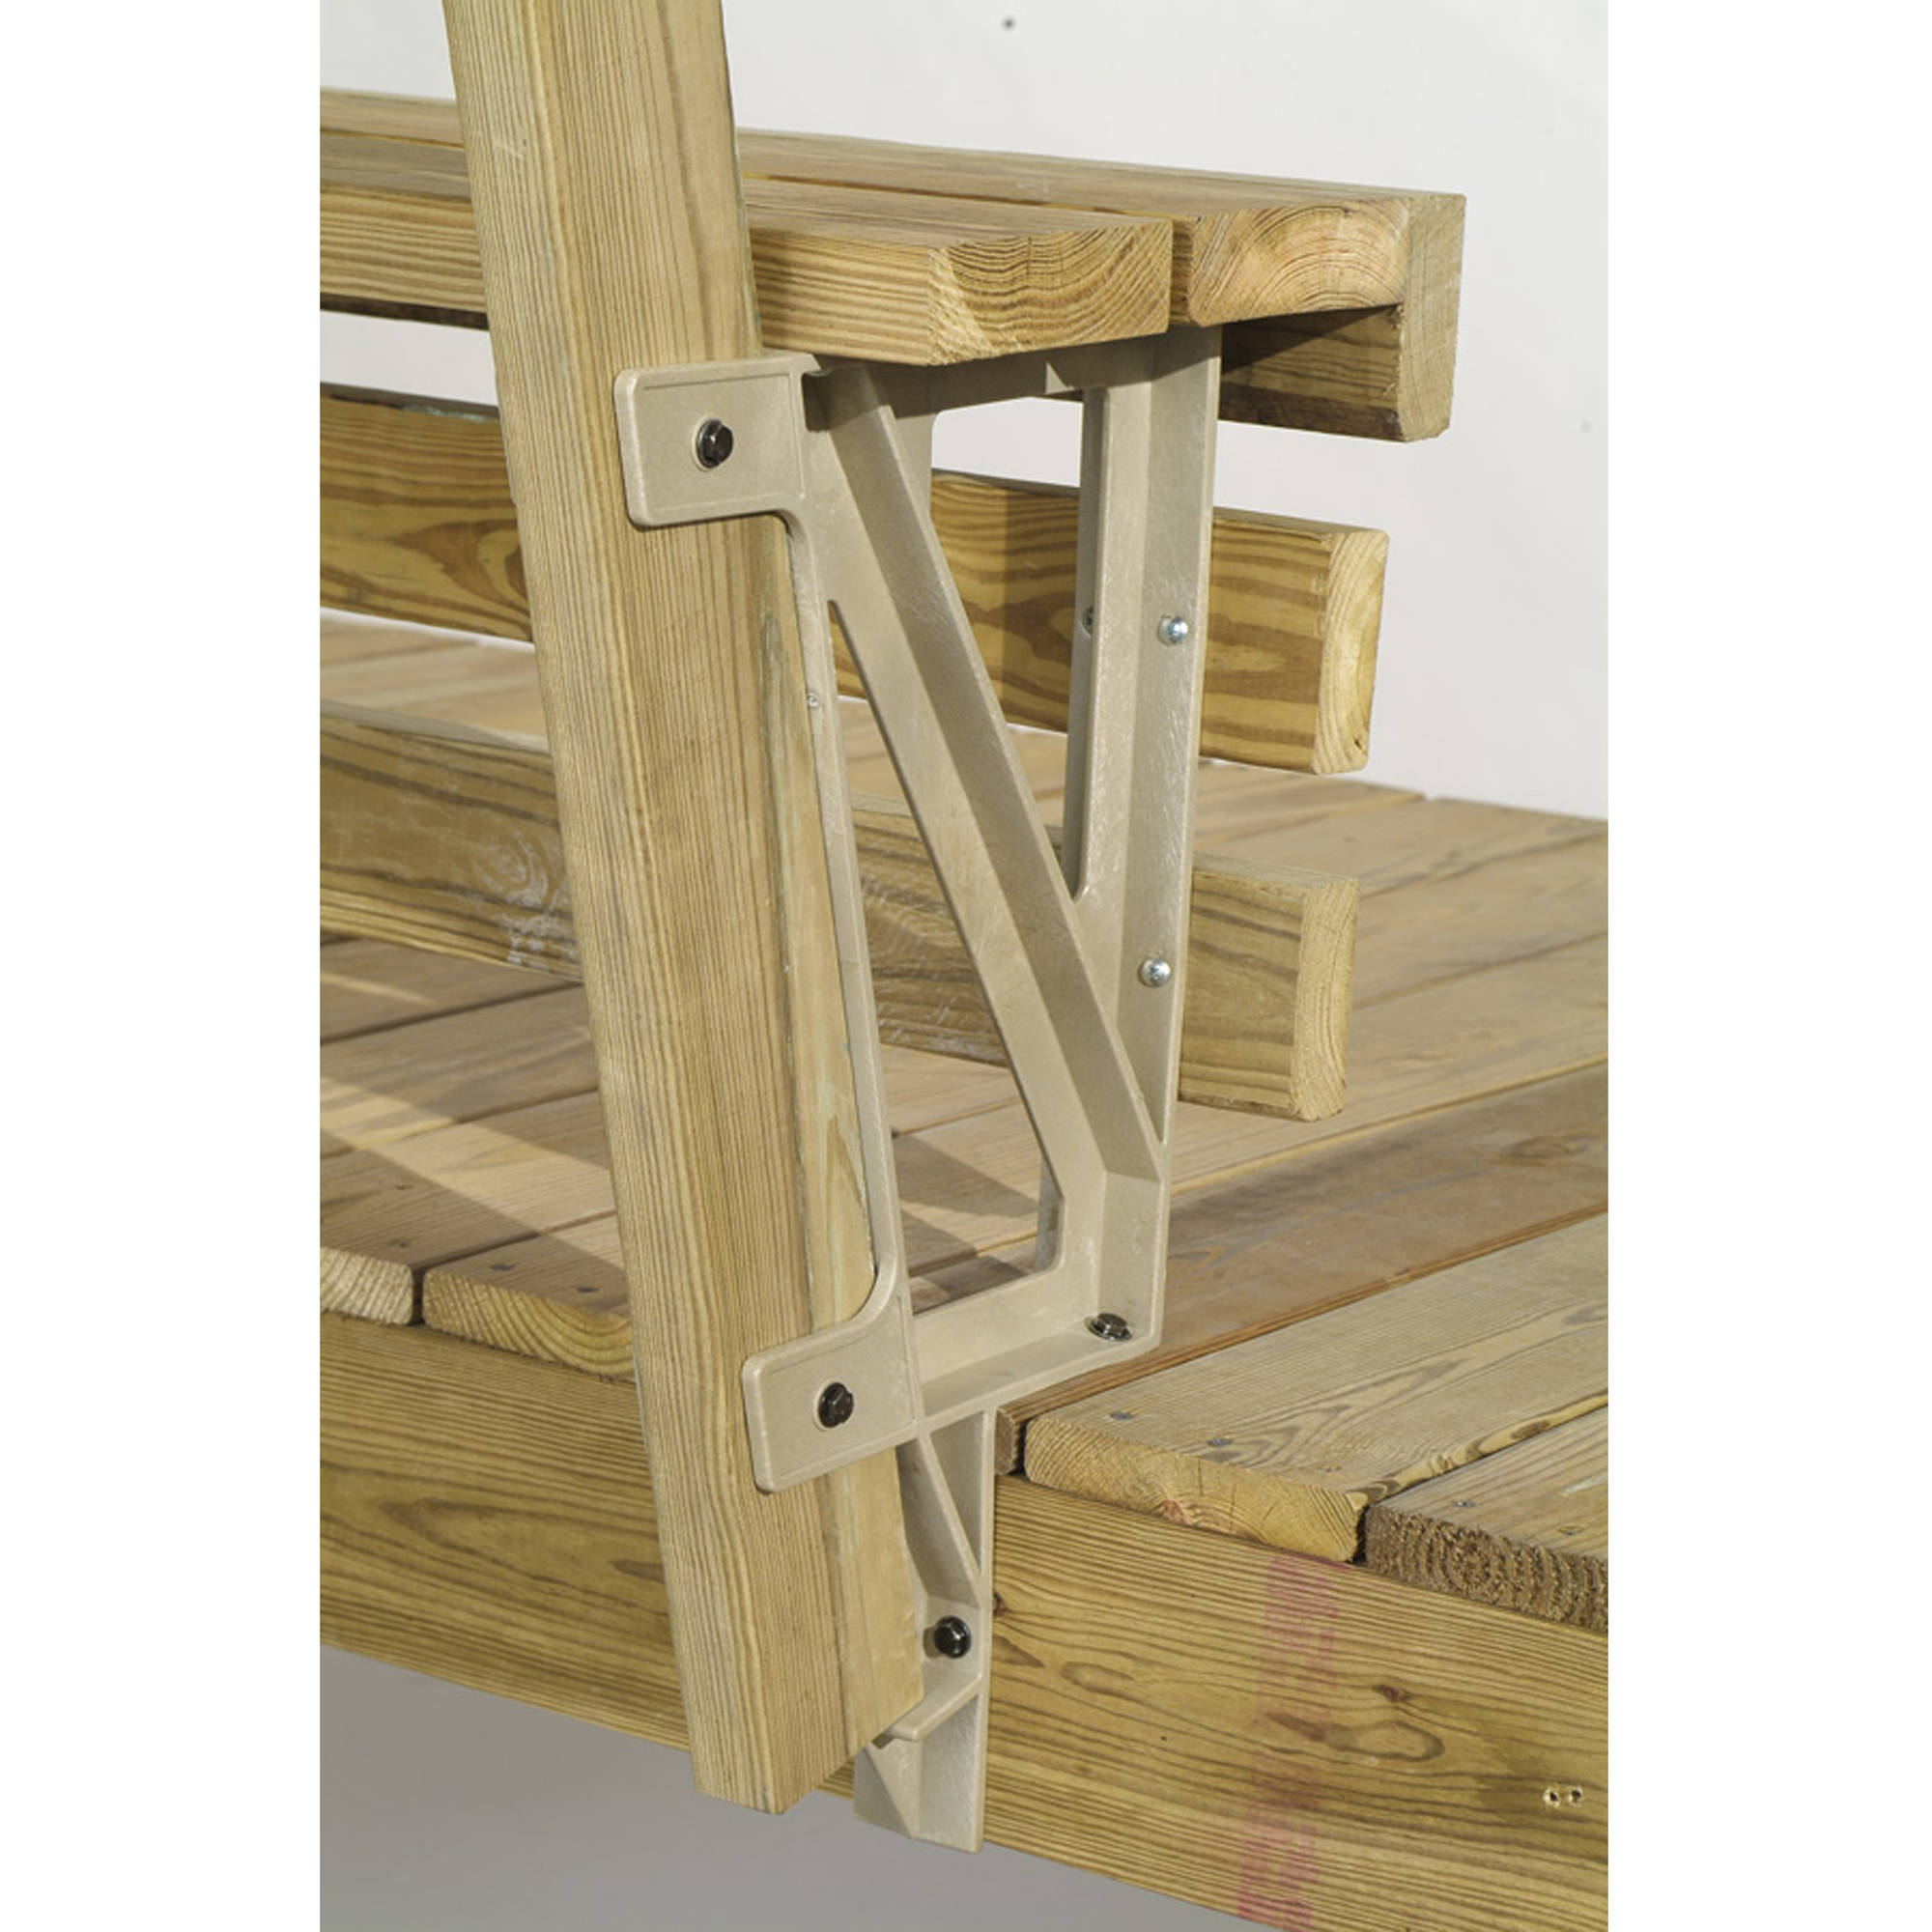 2x4 Basics Dekmate Bench Bracket, 2-Pack